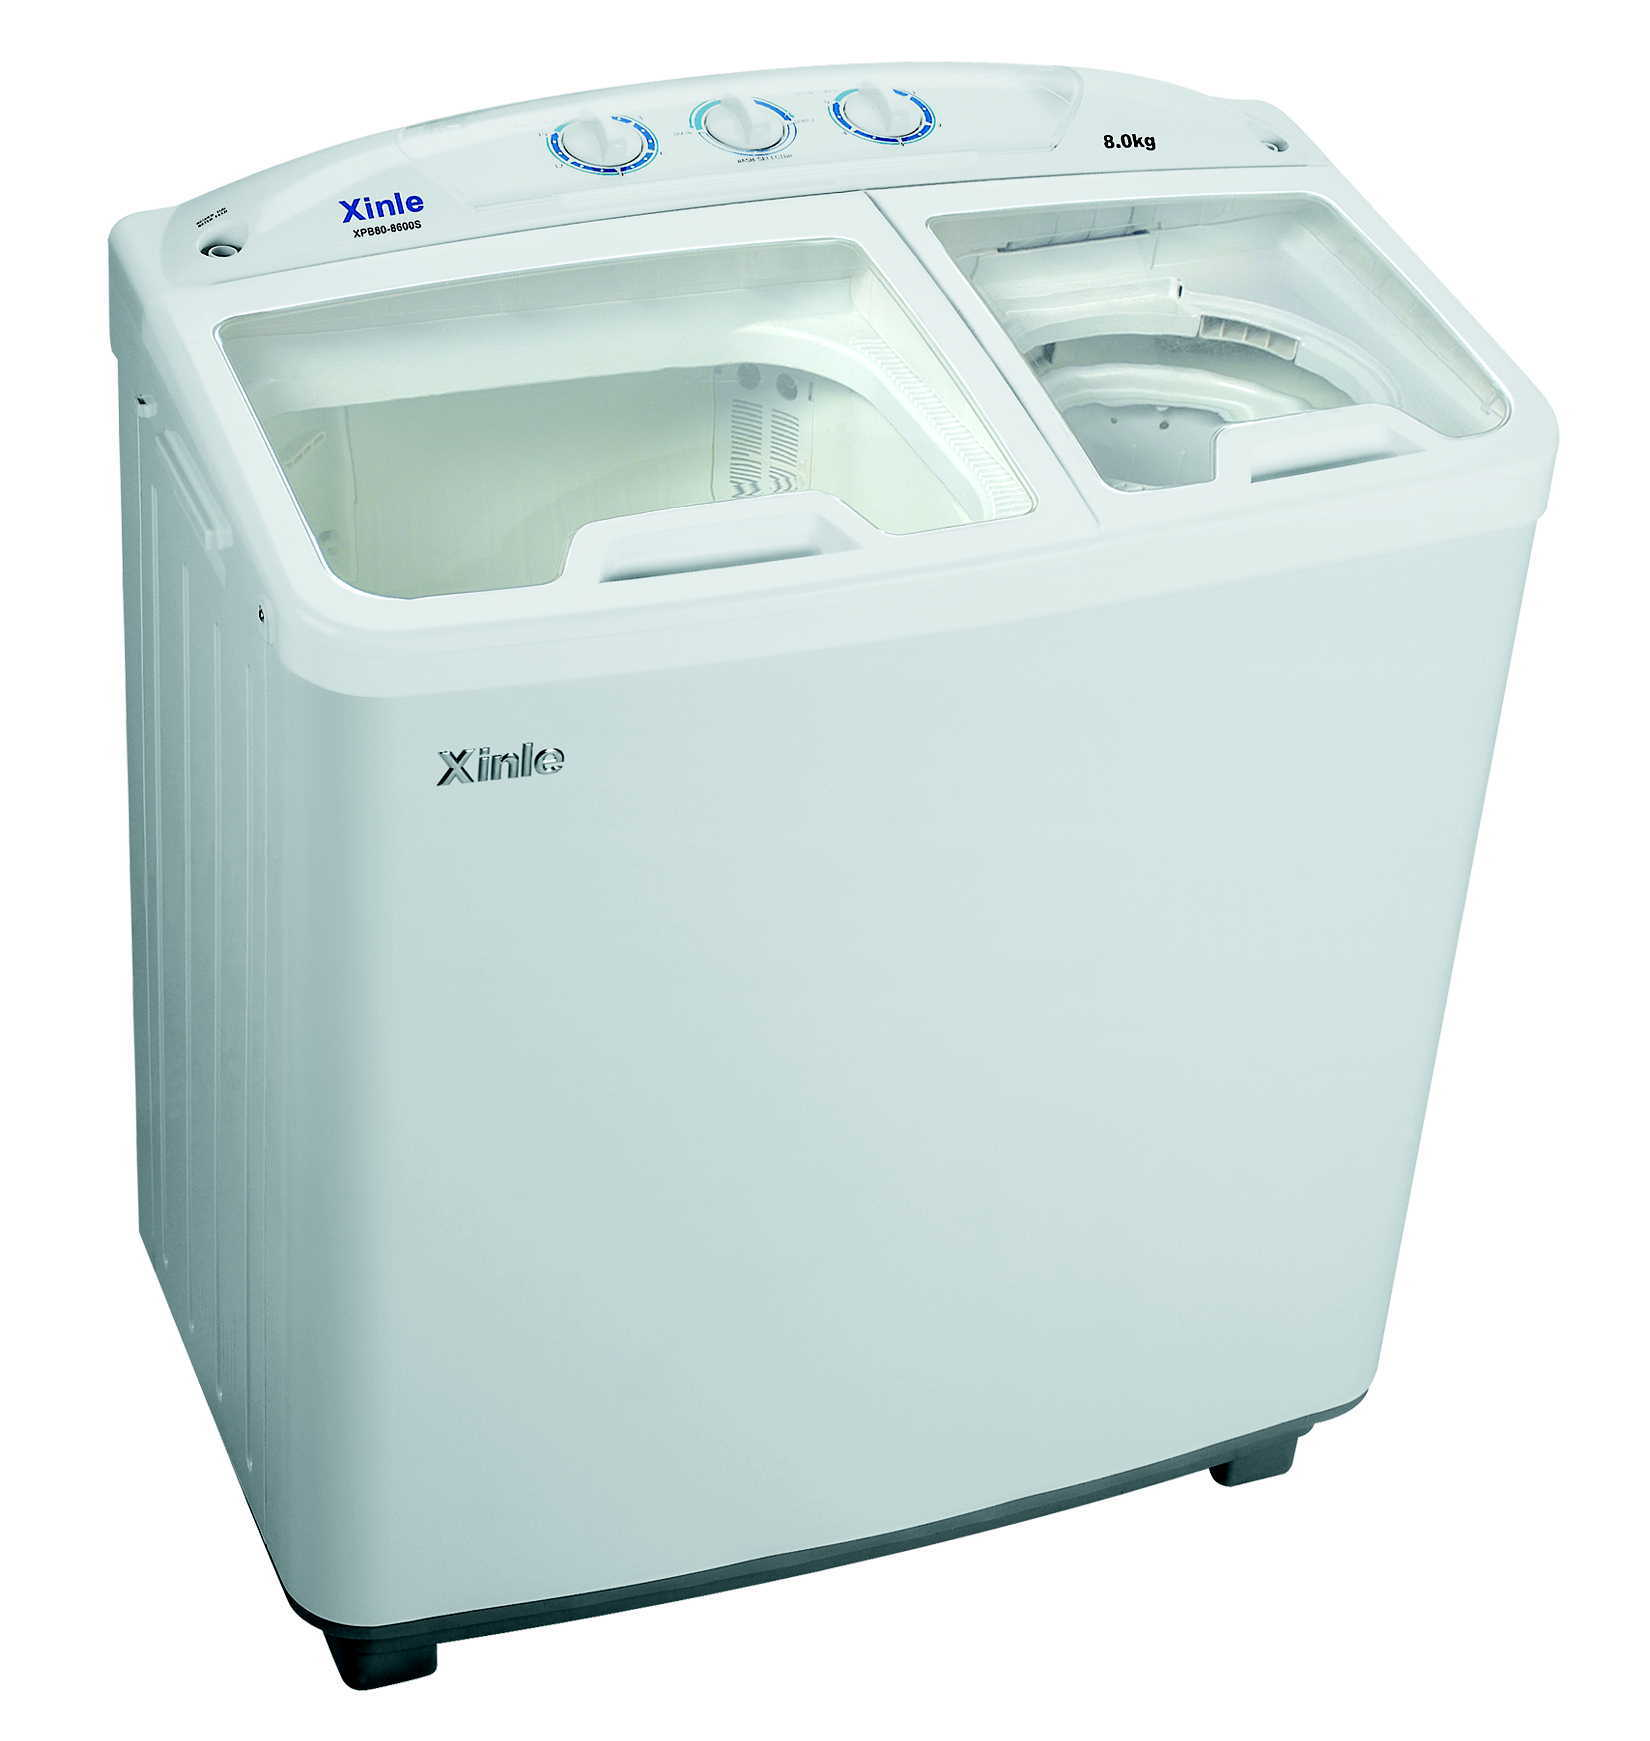 tub washing machine